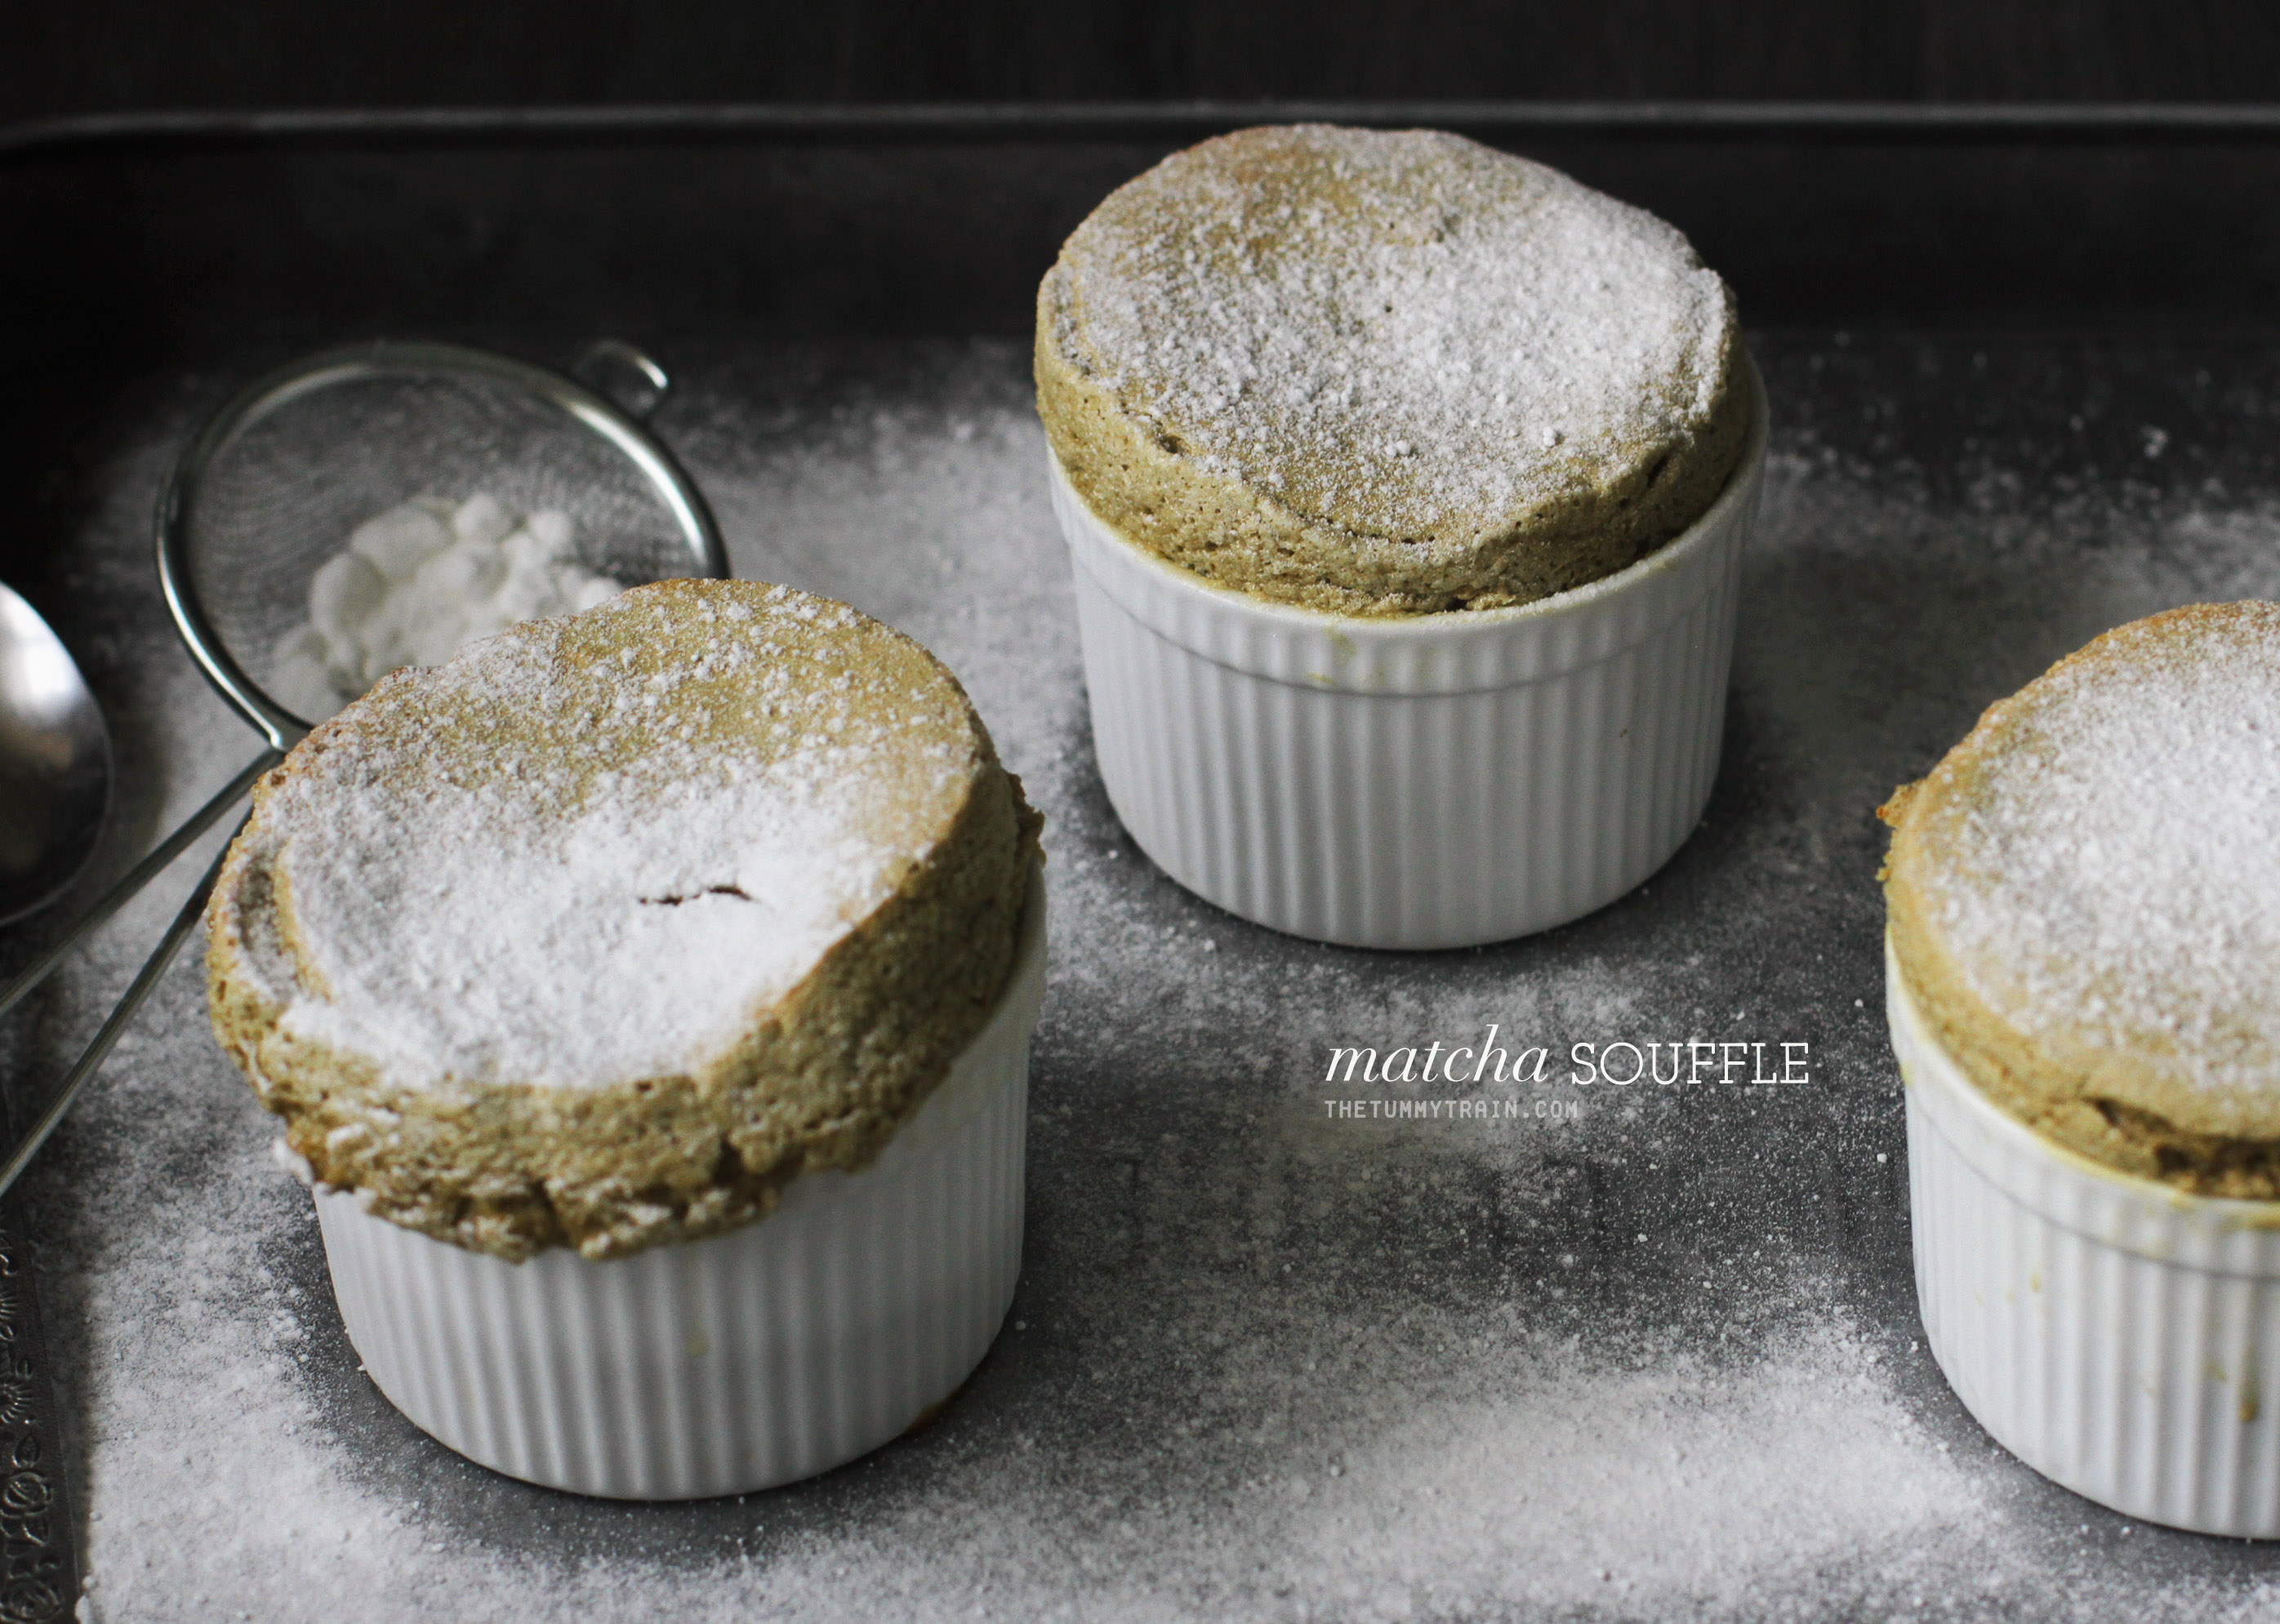 Matcha Souffle 1 - A happy birthday Matcha Green Tea Souffle Recipe